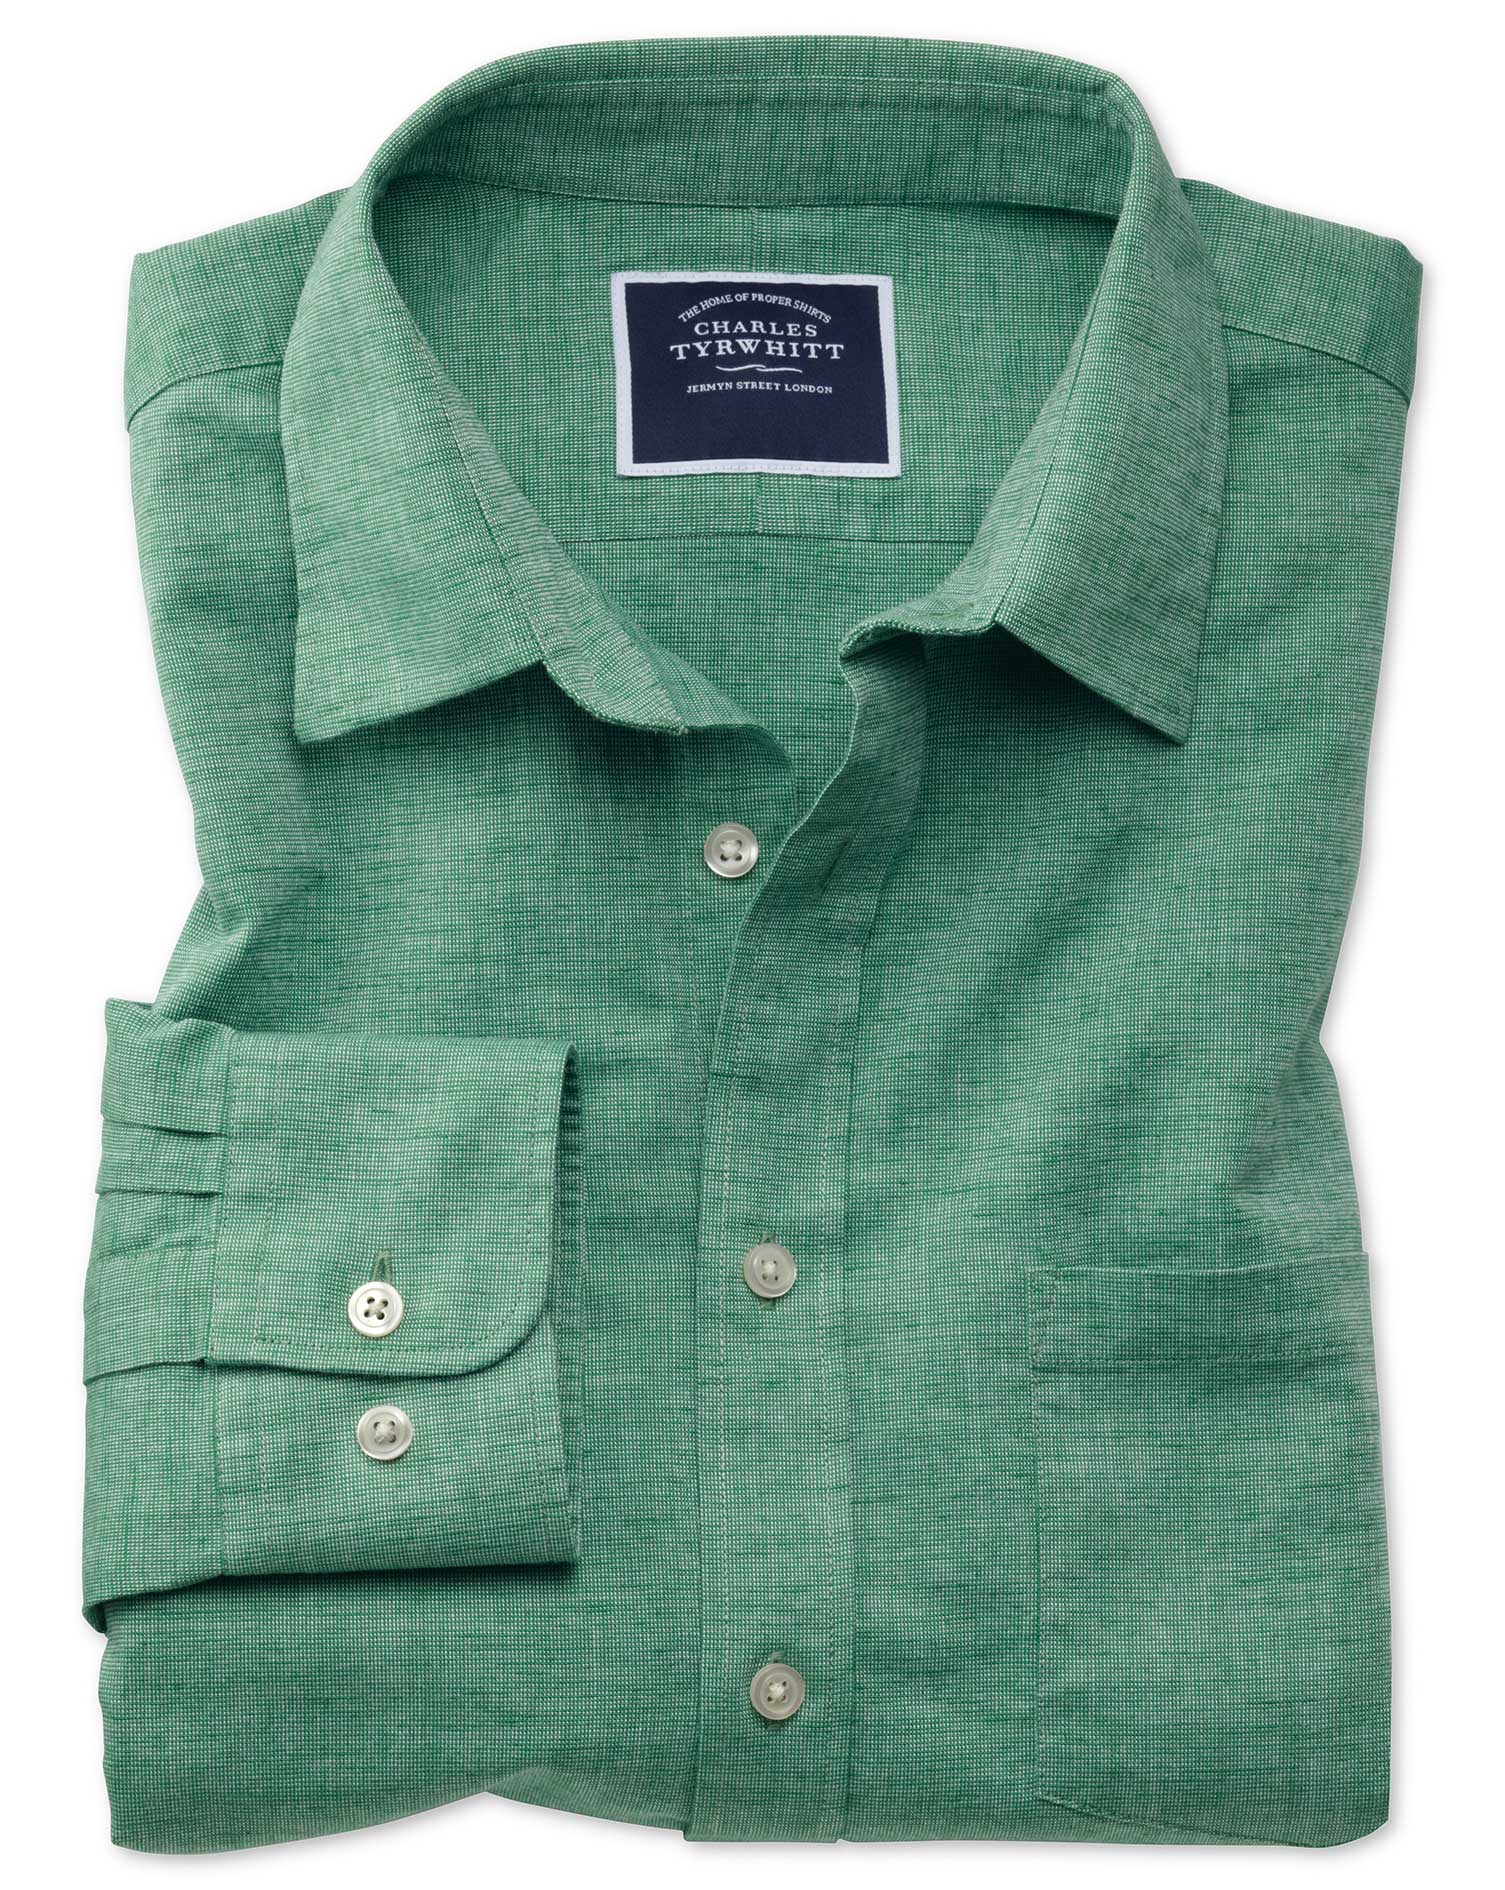 Classic Fit Cotton Linen Green Plain Shirt Single Cuff Size XL by Charles Tyrwhitt